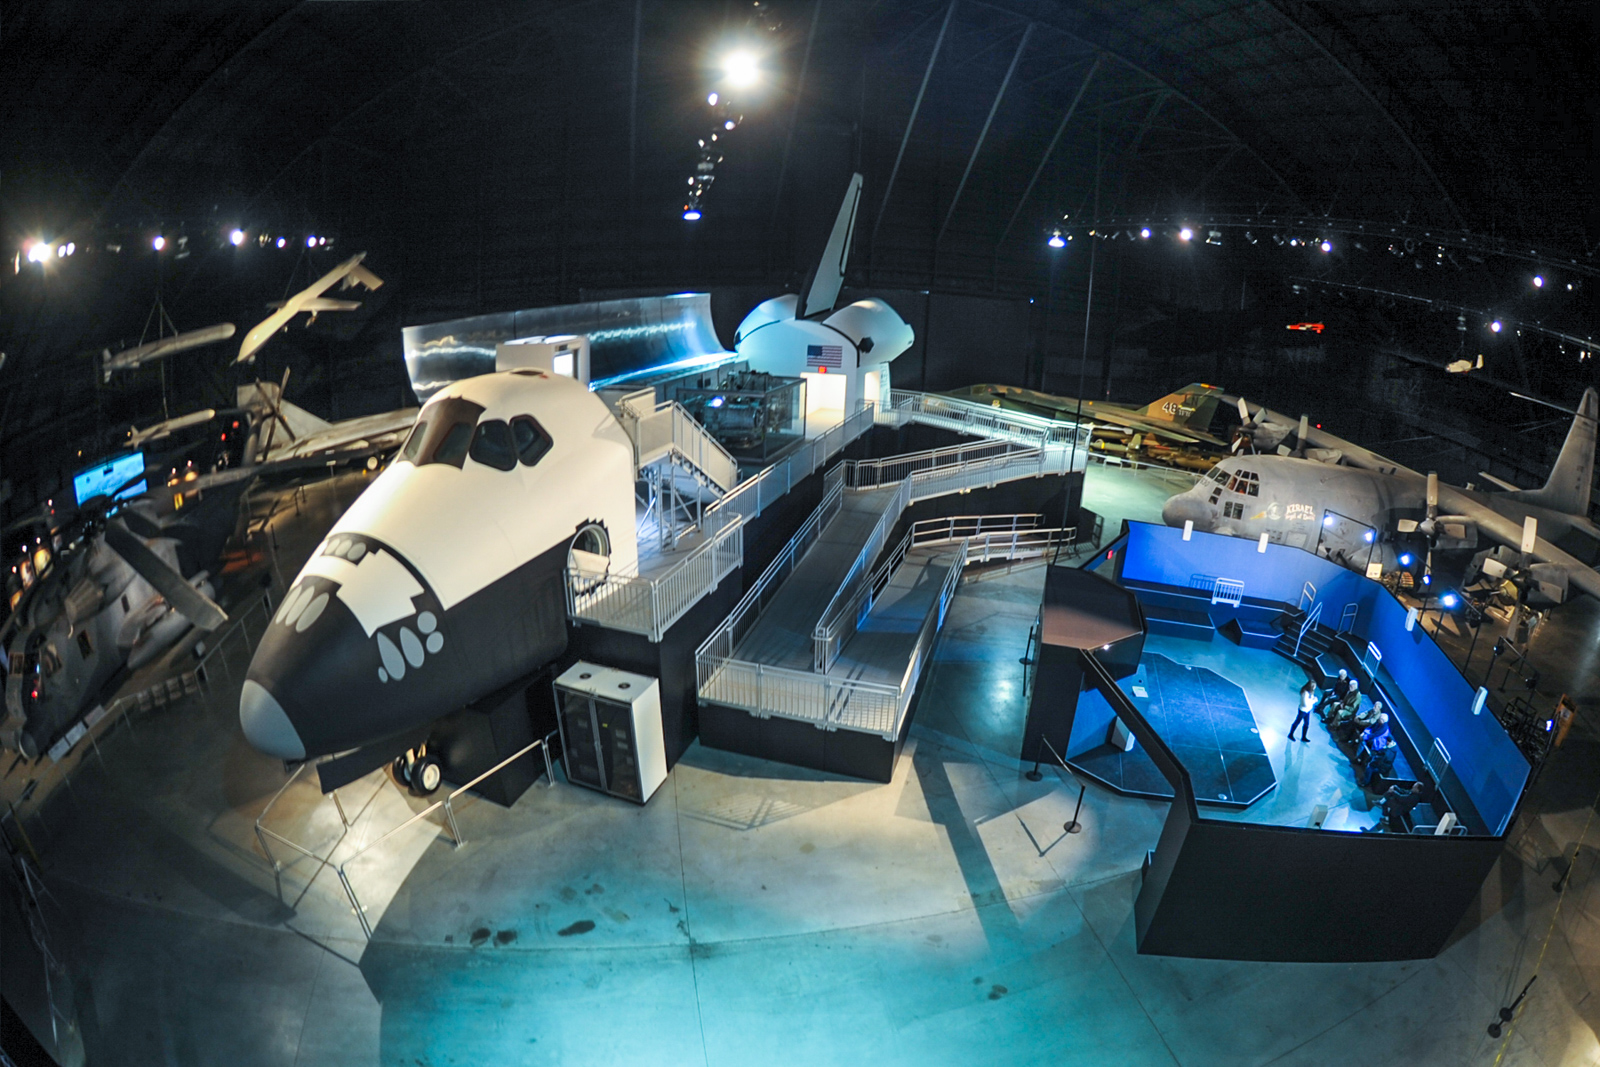 The Space Shuttle trainer and STEM exhibit as they currently exist at the National Museum of the US Air Force. The entire display will be moving into the new fourth hangar in the coming months. (photo via NMUSAF)